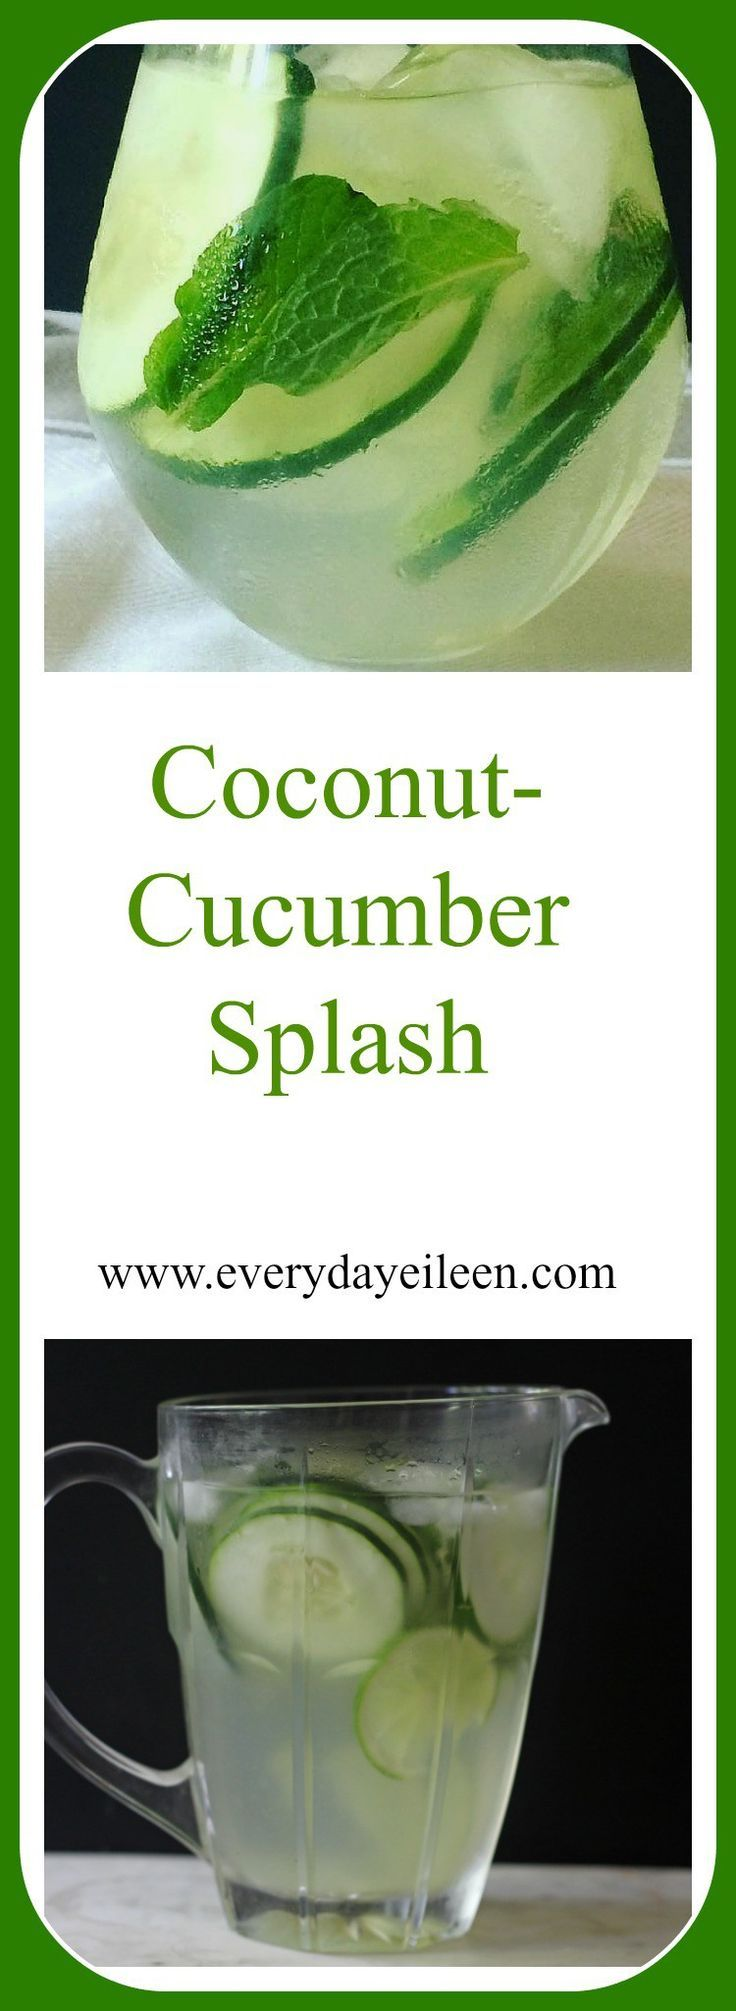 Coconut-Cucumber Splash is a refreshing drink made with coconut water,agave,lime juice, mint leaves, ginger, and cucumbe